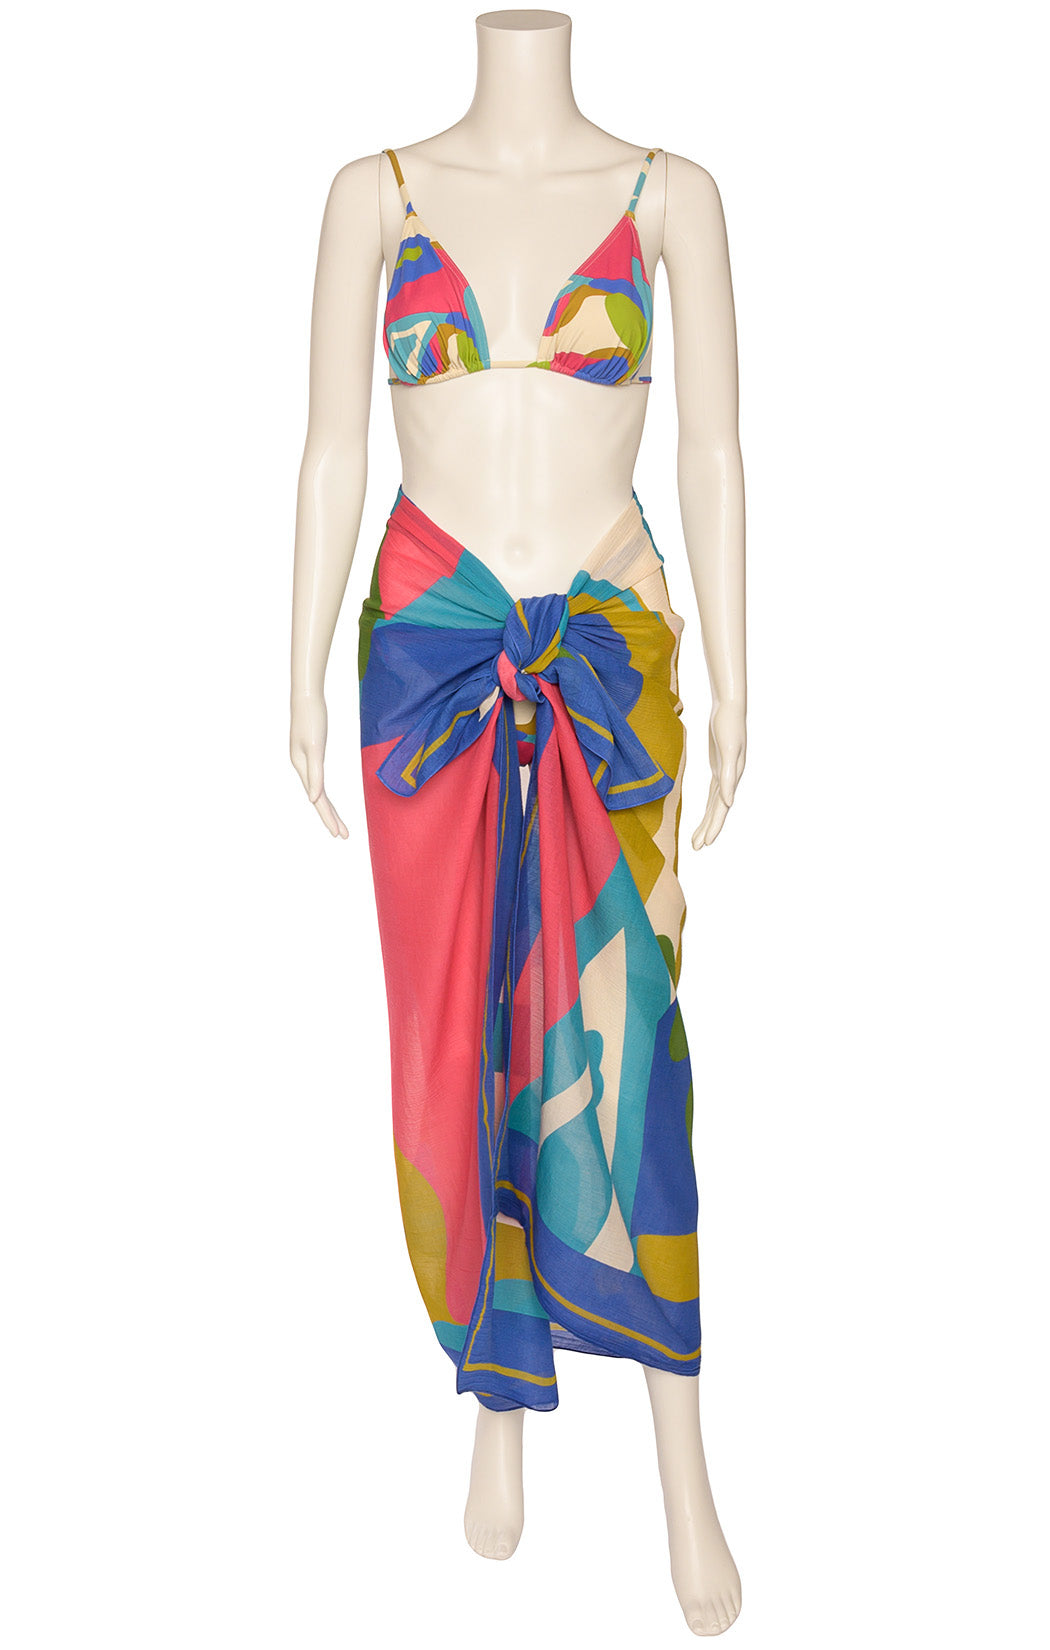 Front view of ERES Bikini and matching sarong Size: Top-12, bottoms-10, sarong O/S